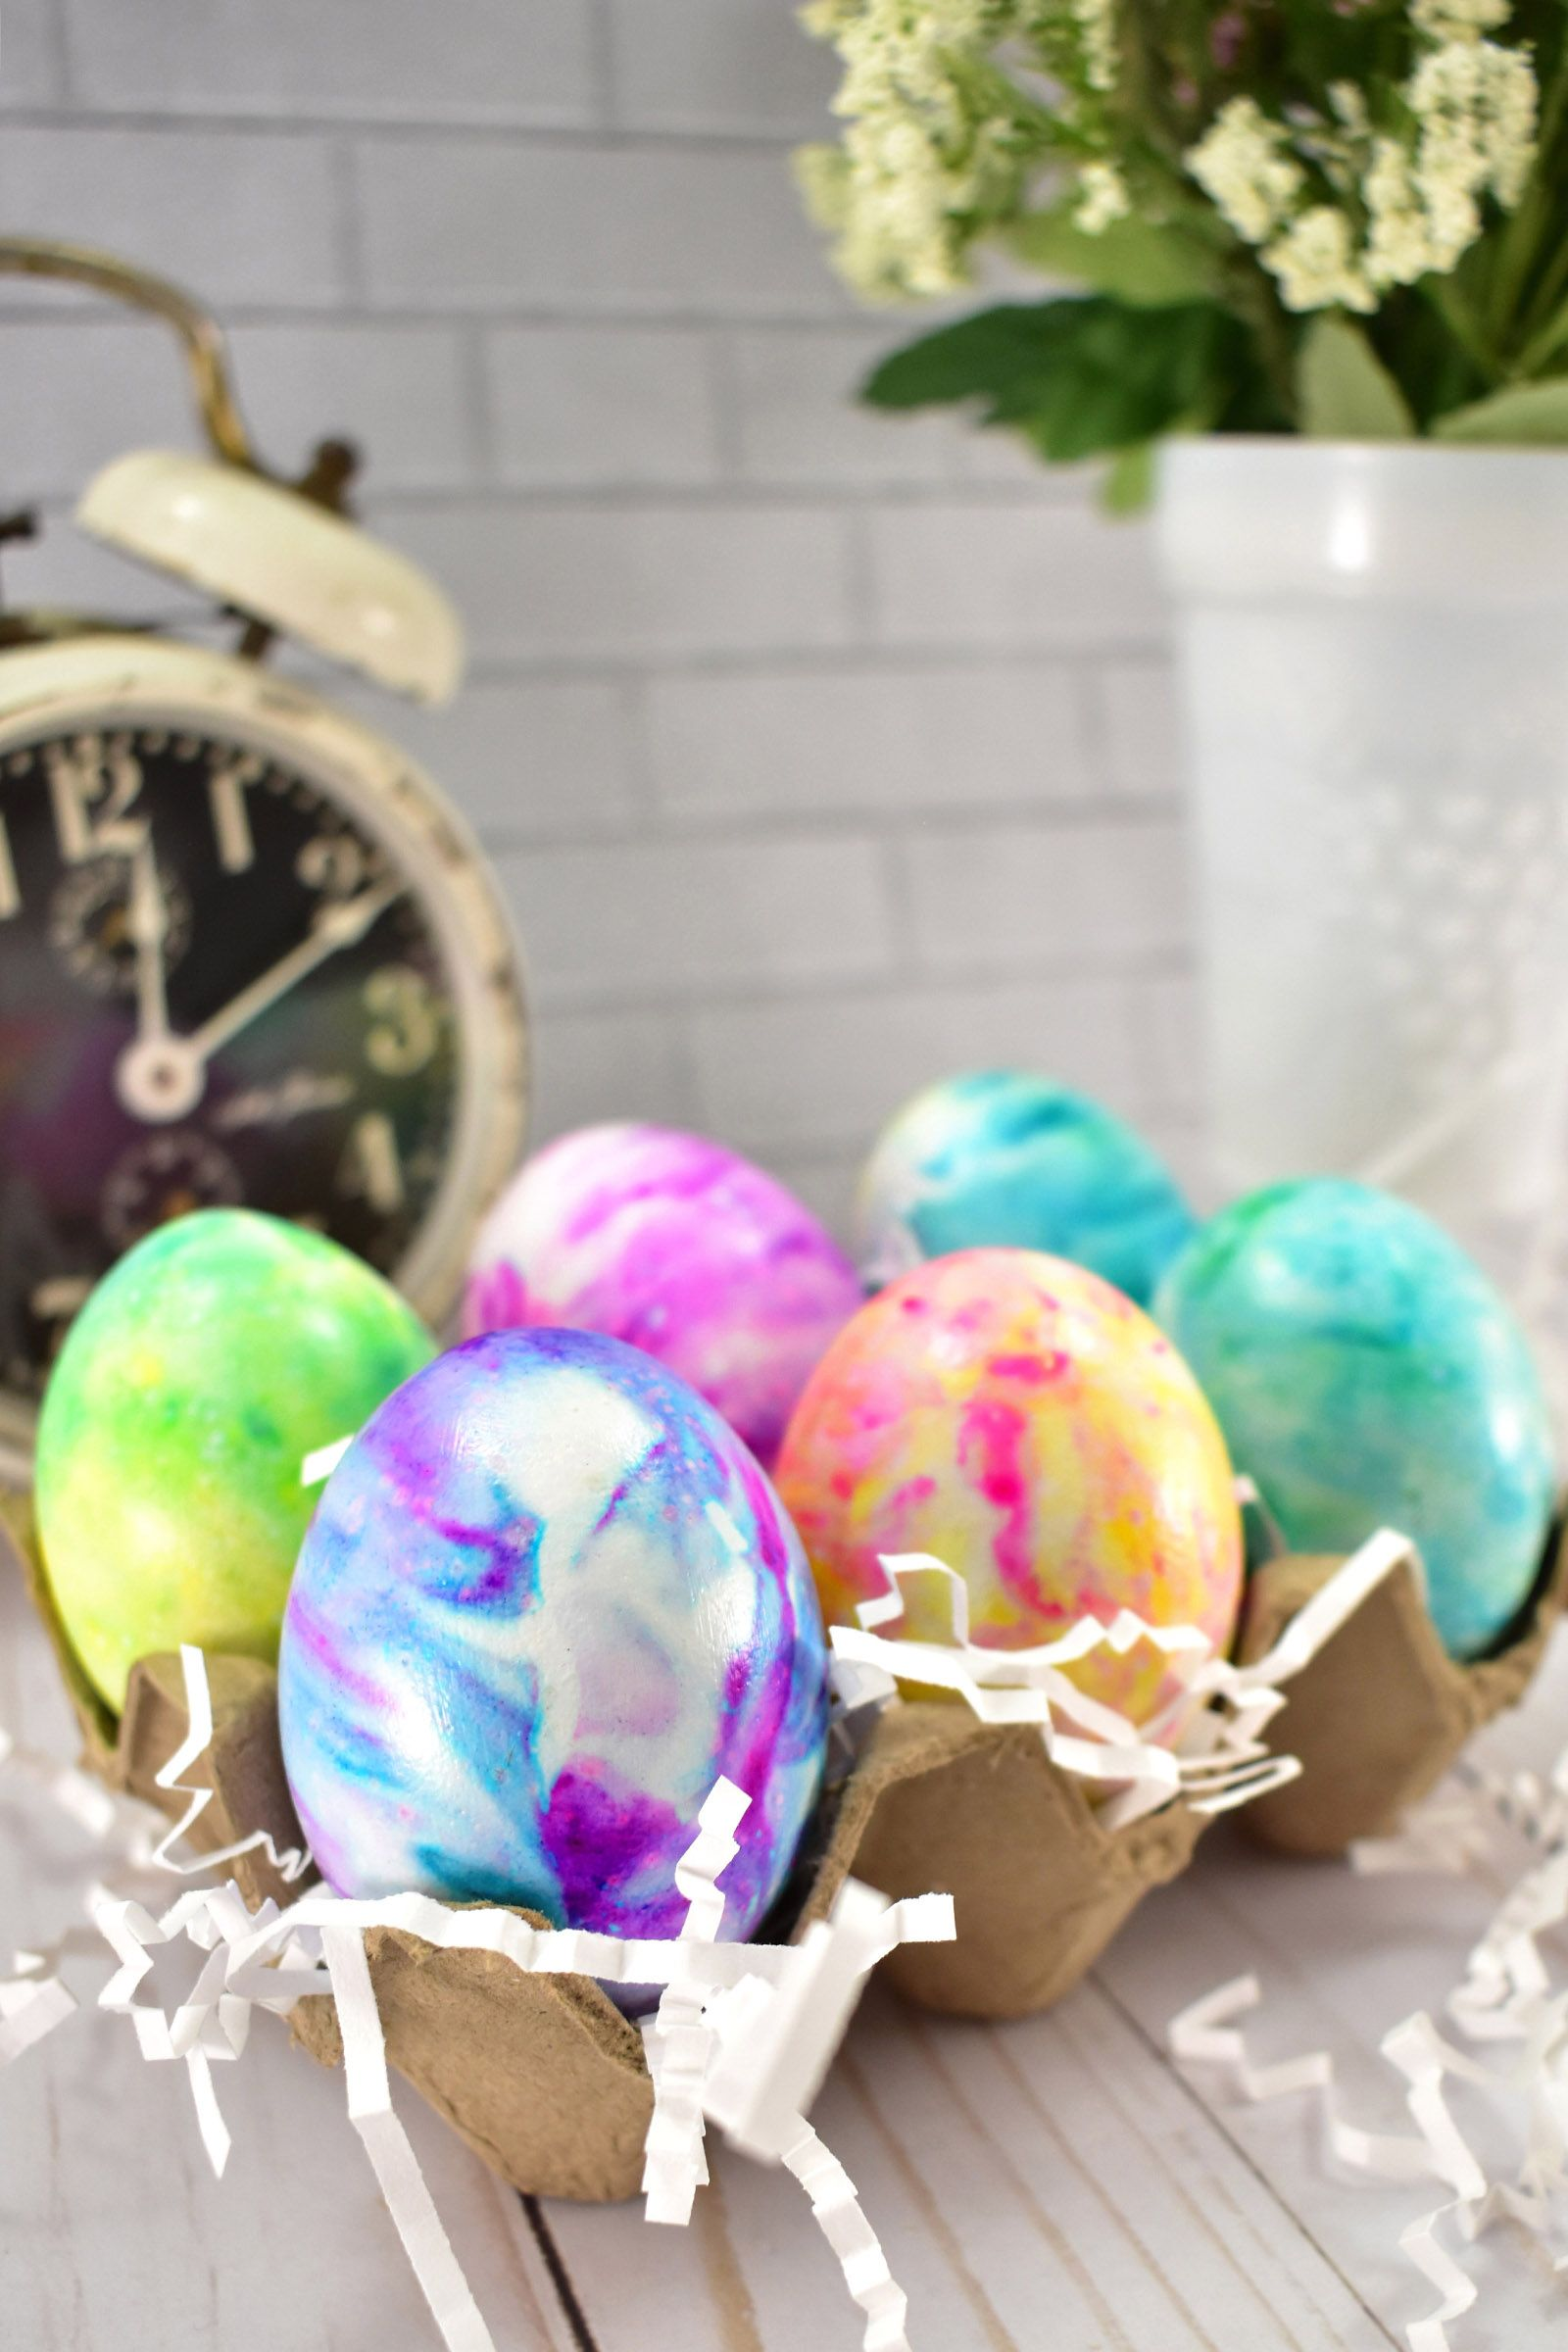 How to make cool dye easter eggs with shaving cream